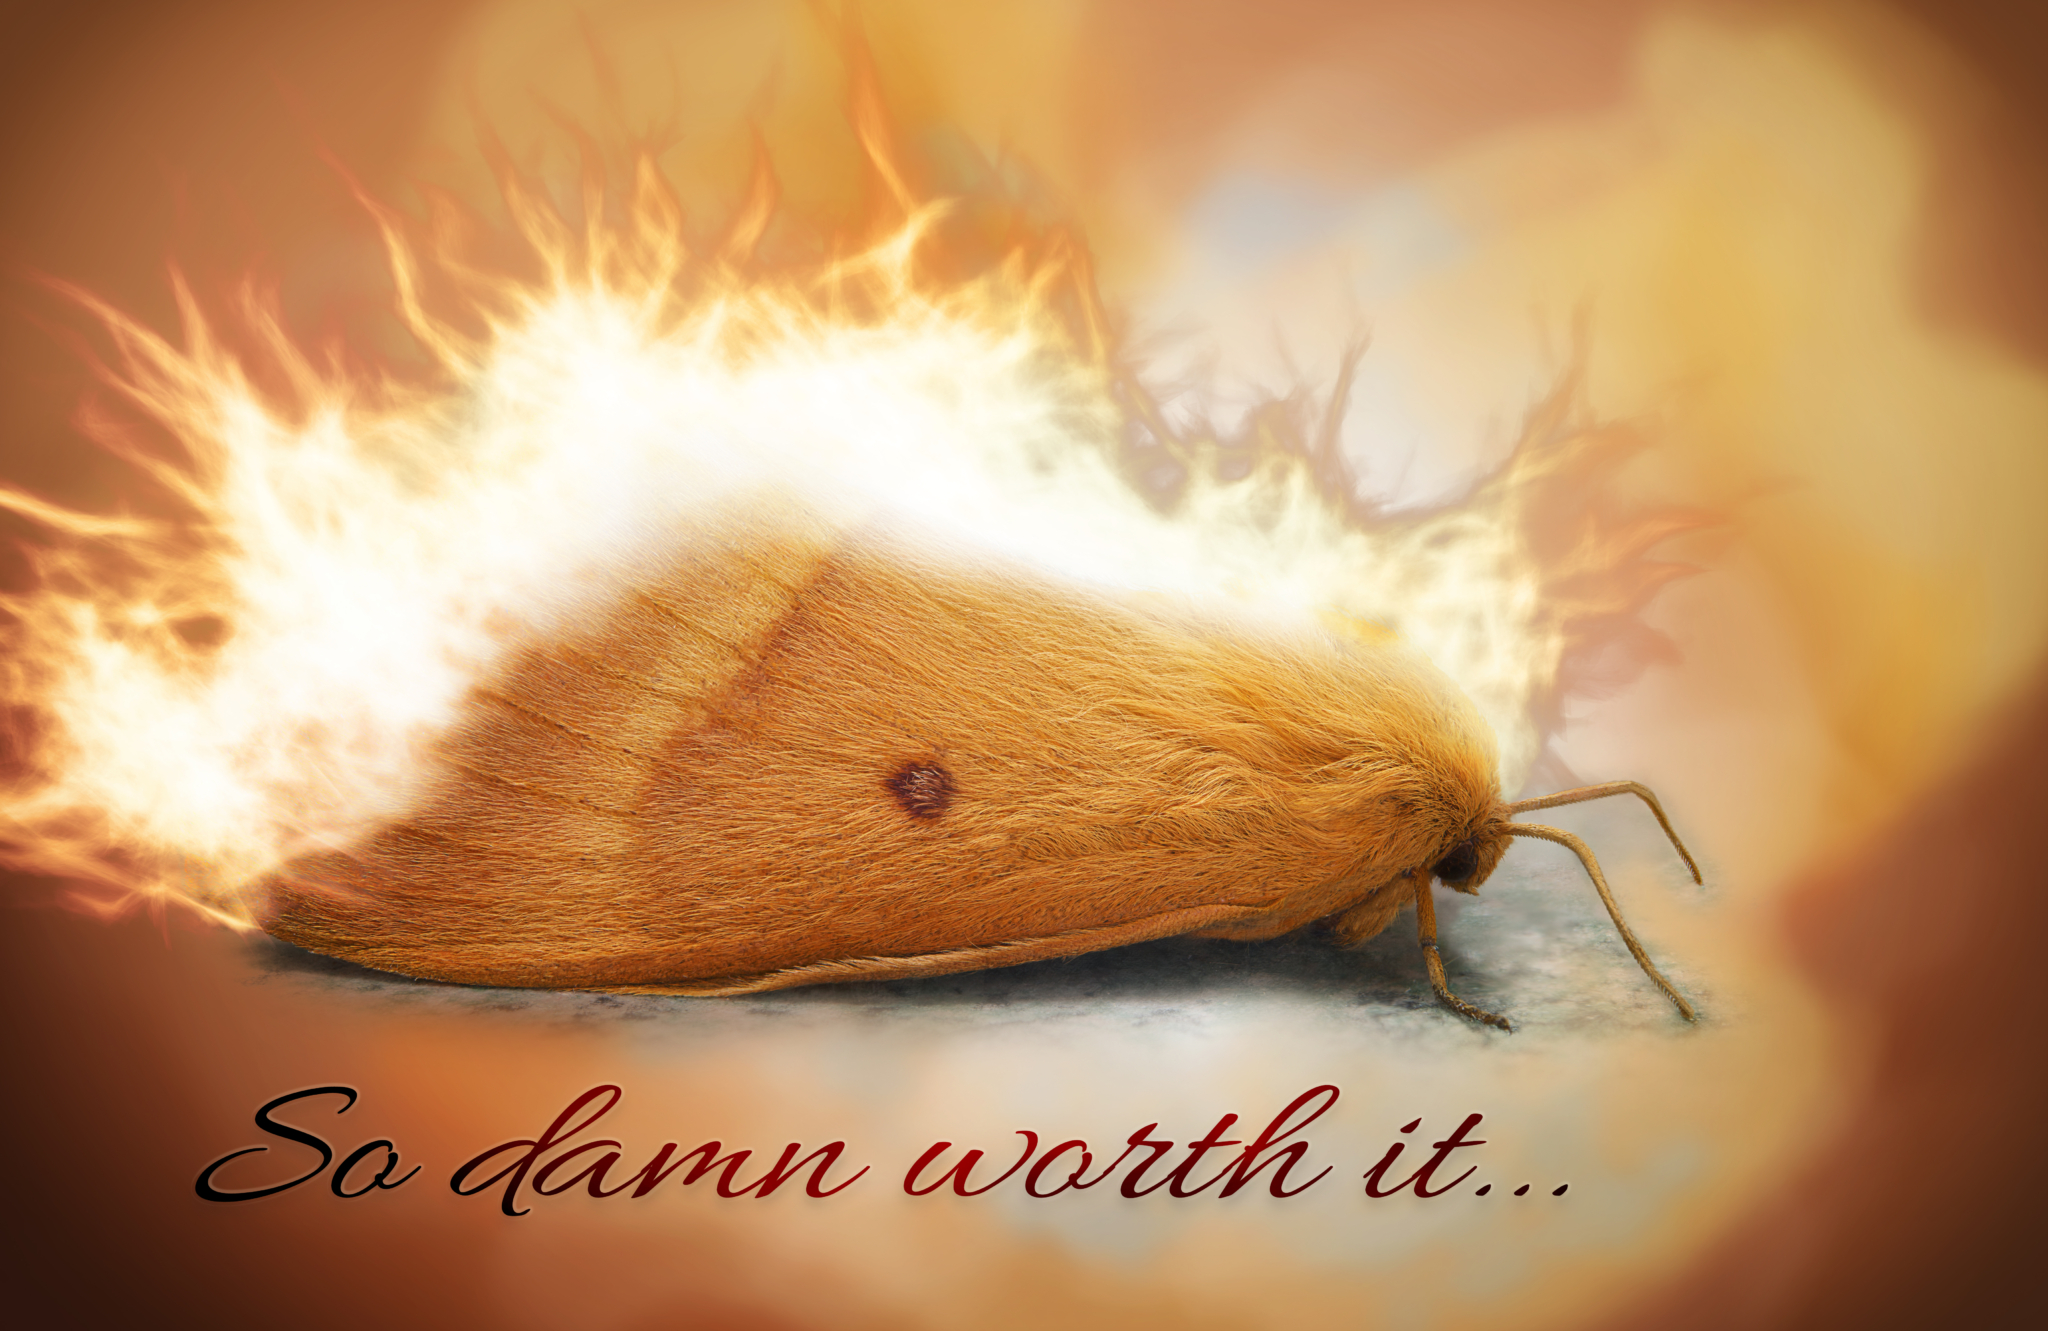 Moth in flames